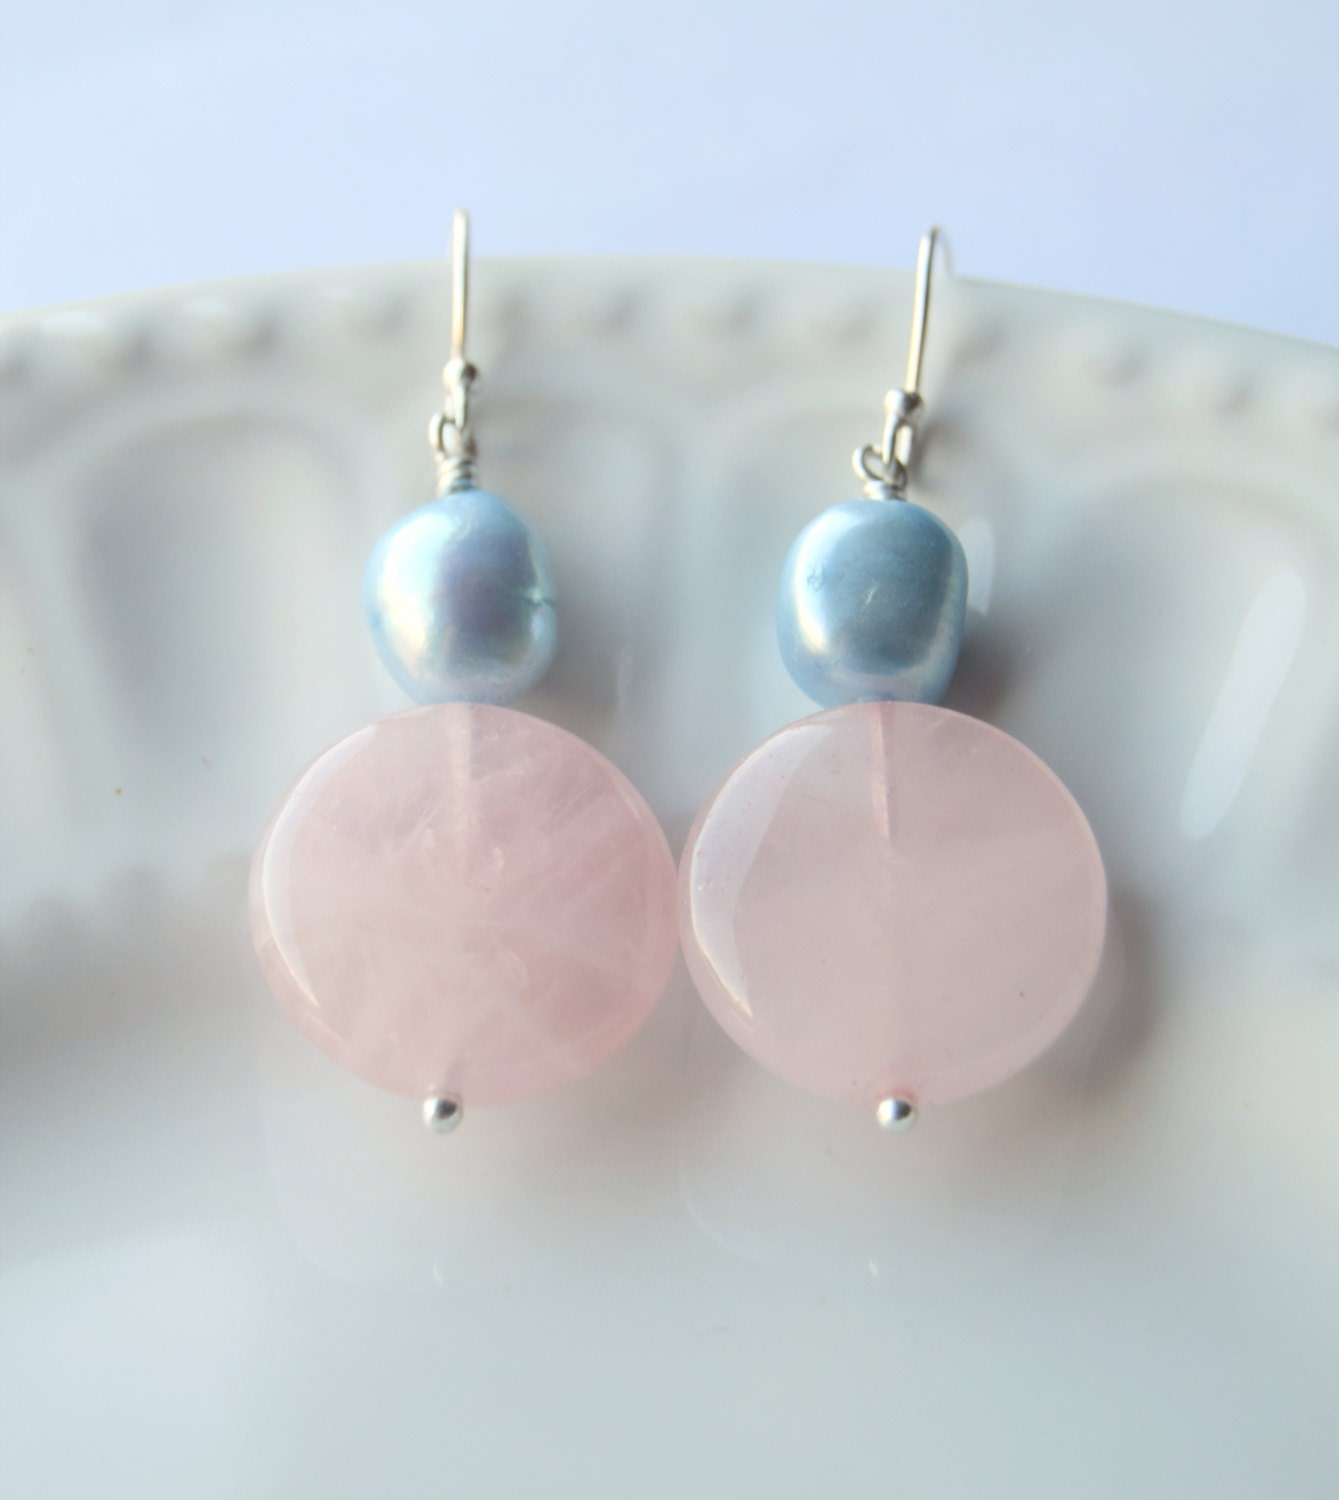 rose quartz serenity blue pearl earrings pink earrings. Black Bedroom Furniture Sets. Home Design Ideas